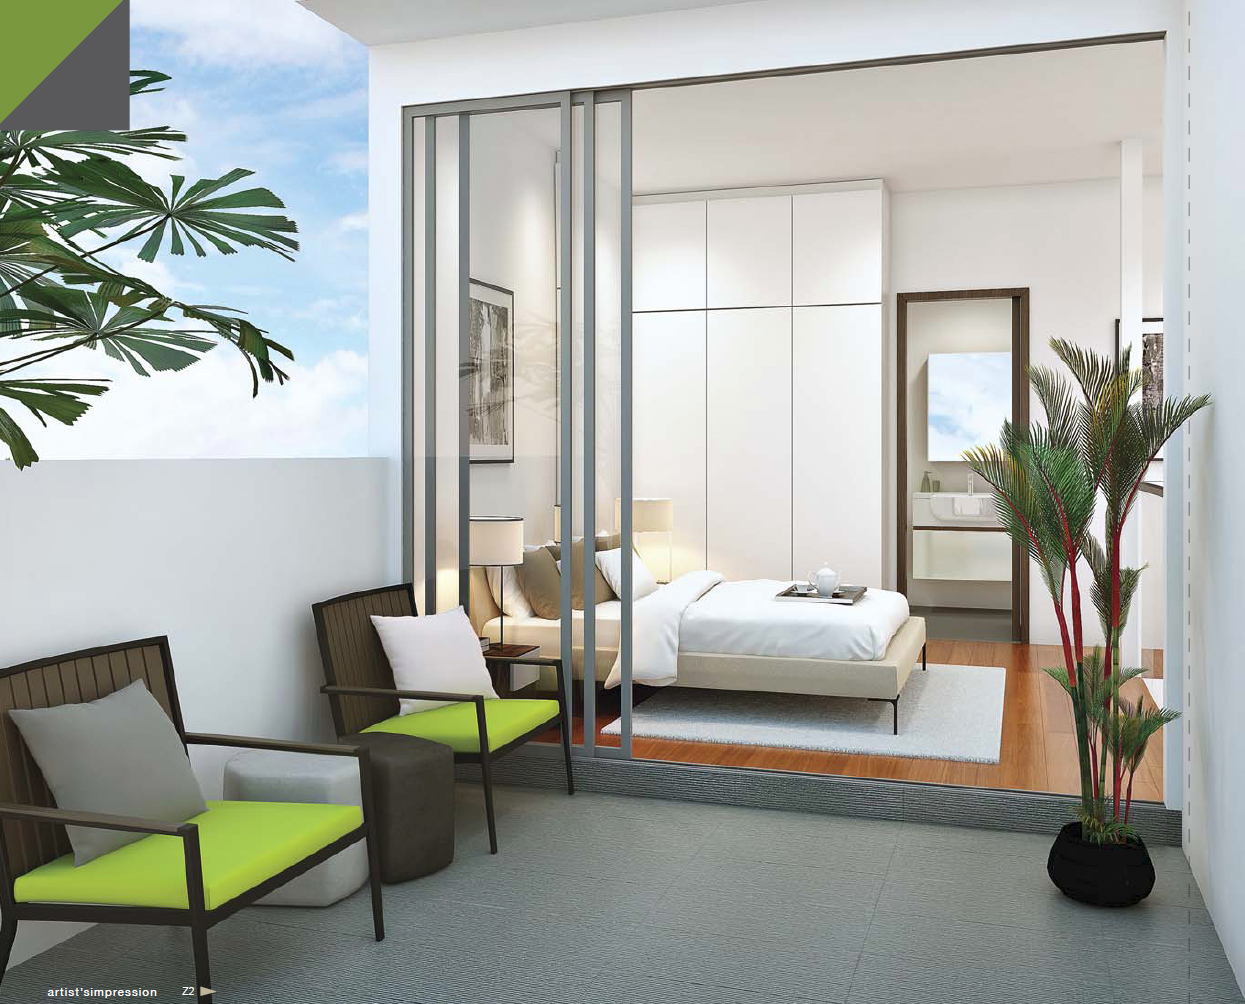 Hills-TwoOne-Penthouse-bedroom